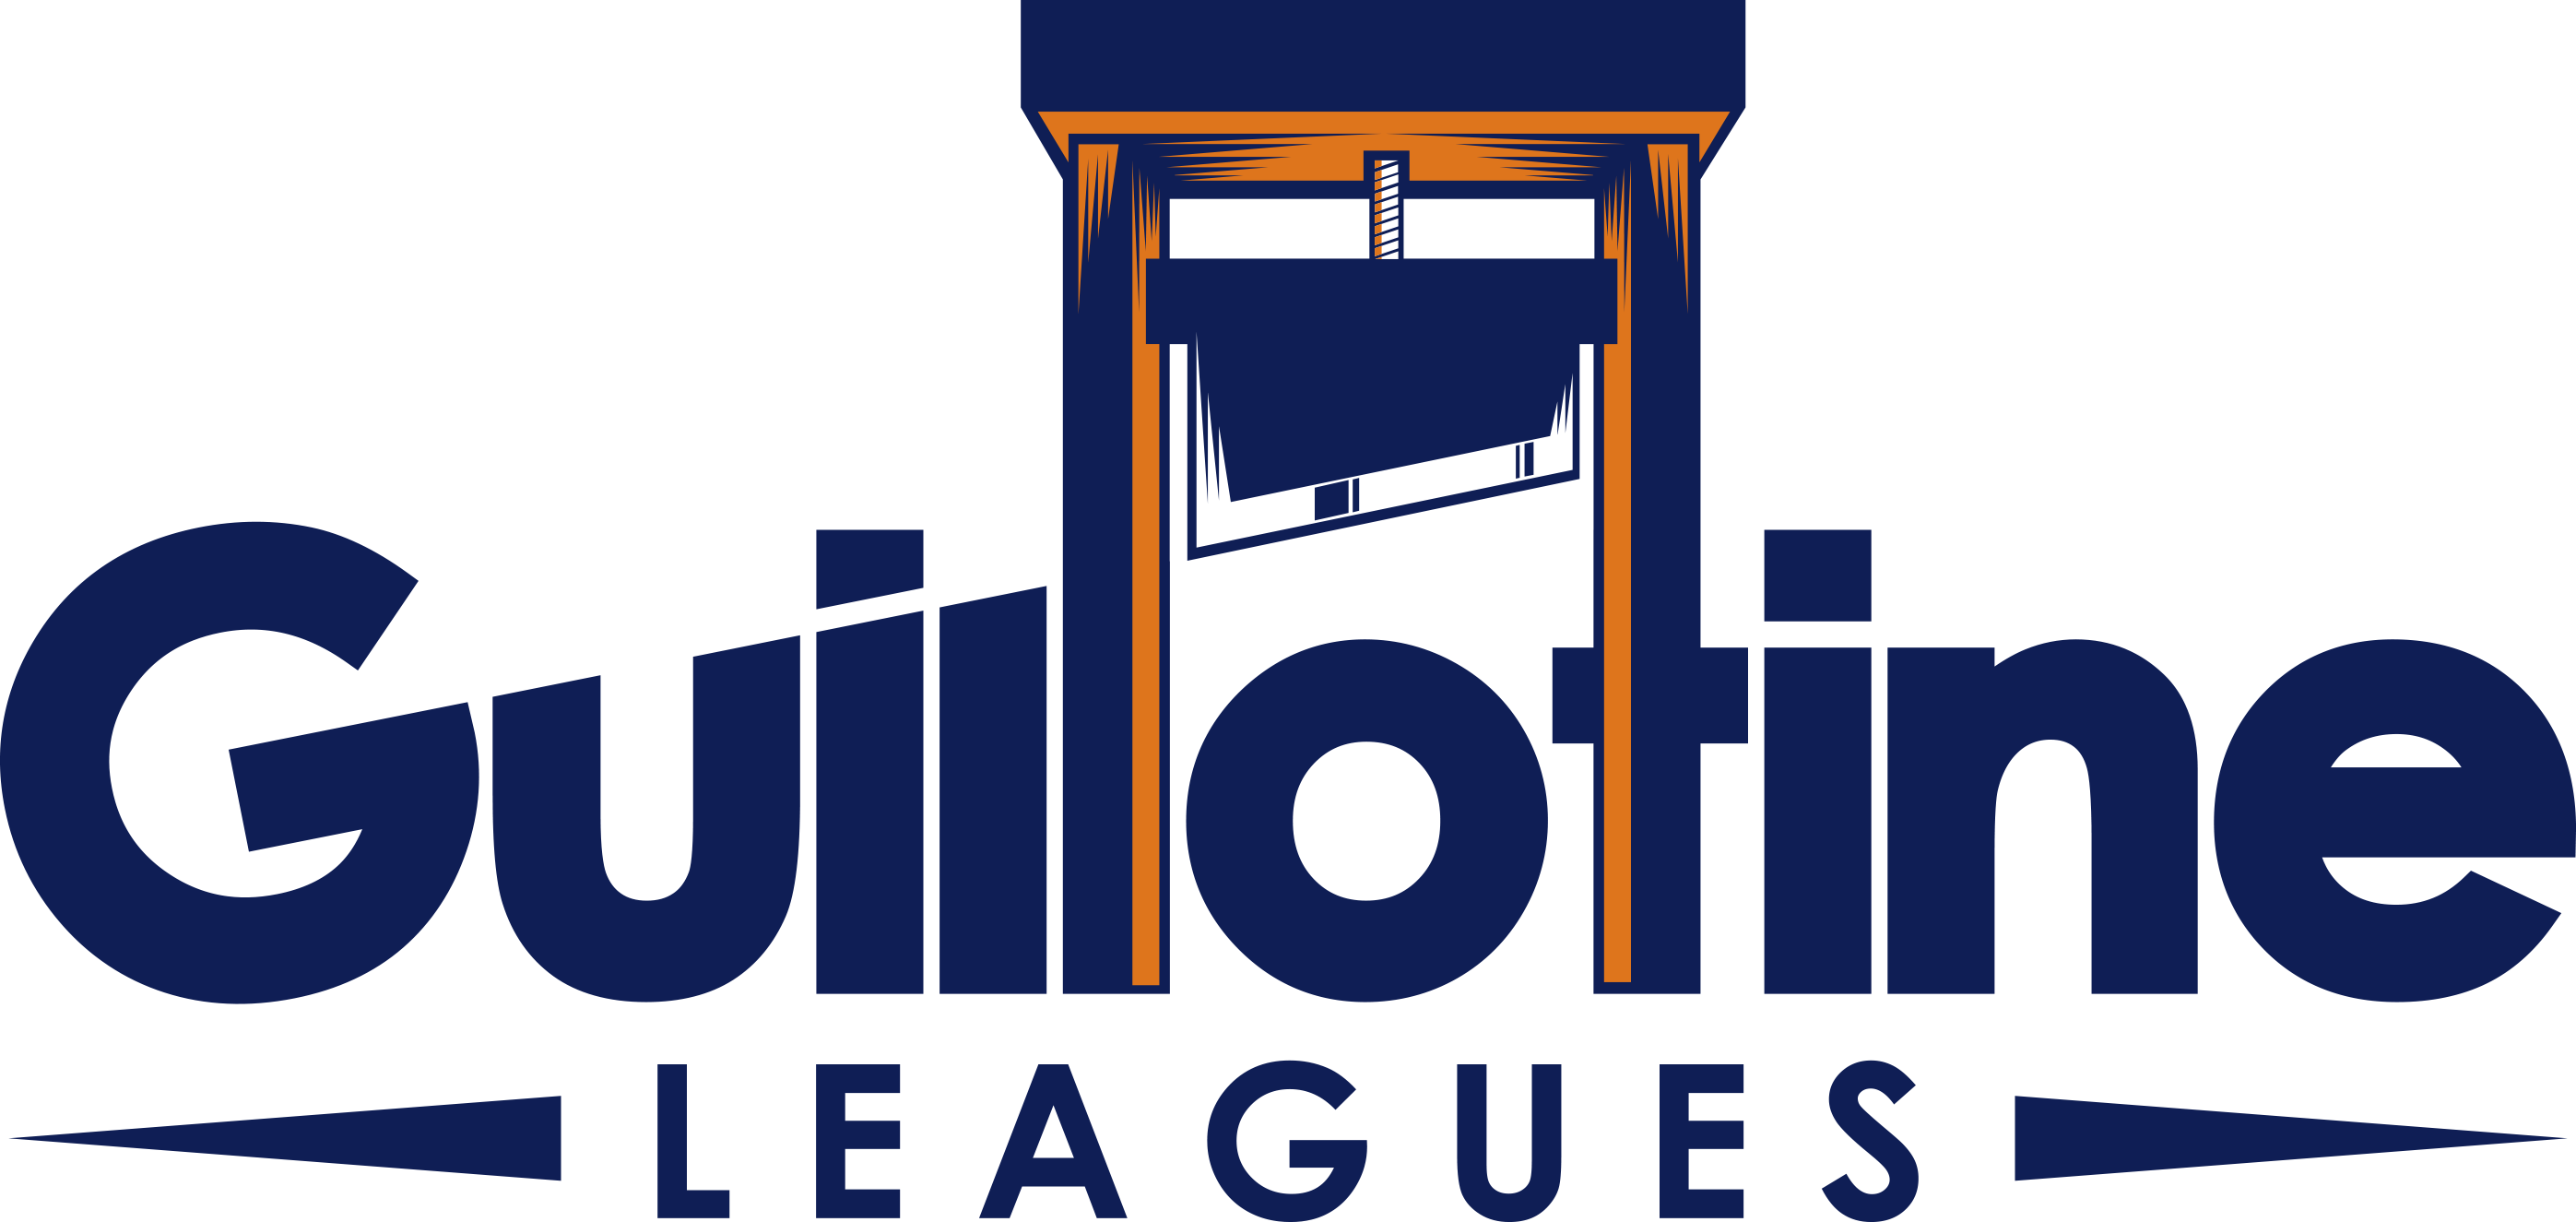 Guillotine League Help Center home page